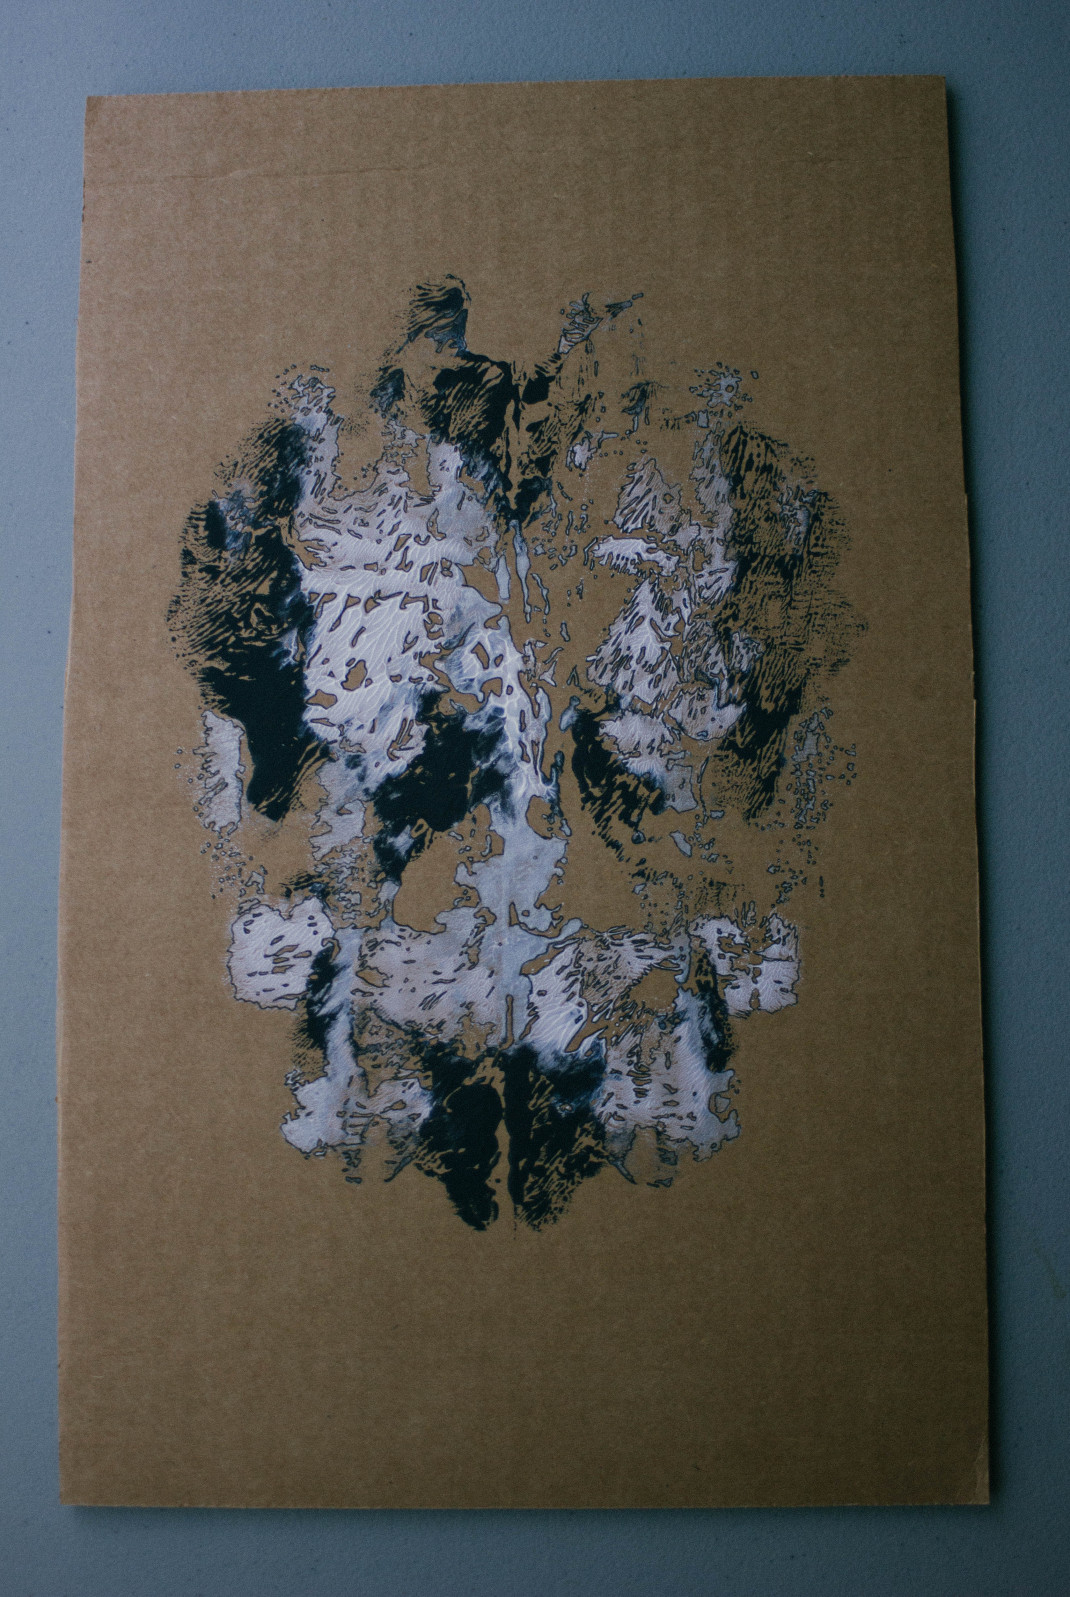 Decalcomania Acrylic on Cardboard – Kirsten Whitney